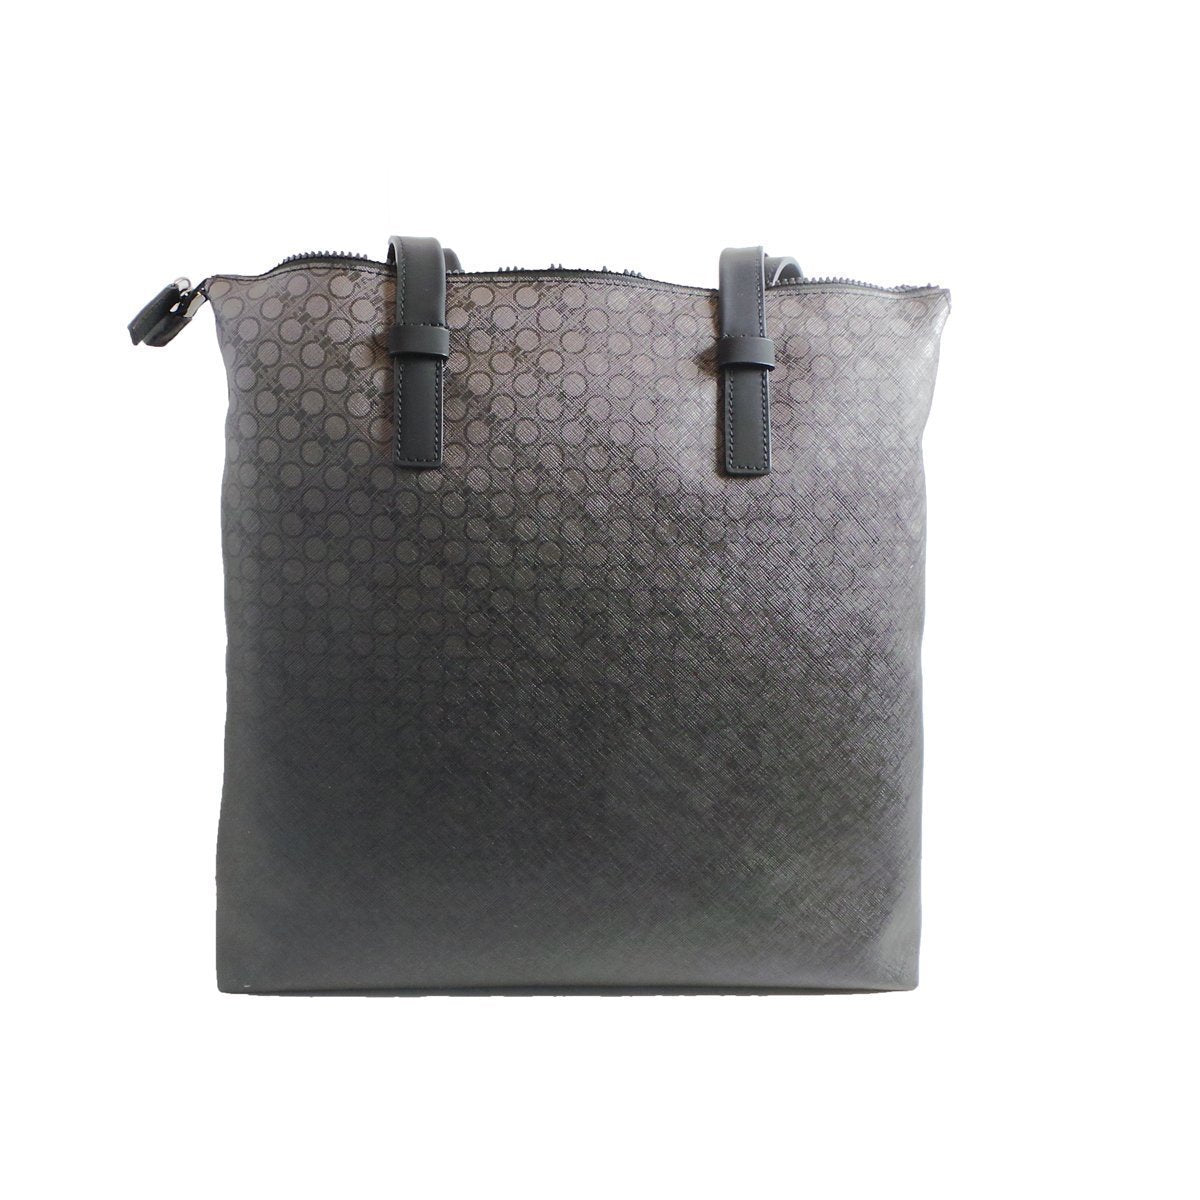 Ferragamo Black Leather Canvas Supreme Bianc Shopping Tote 0194/01